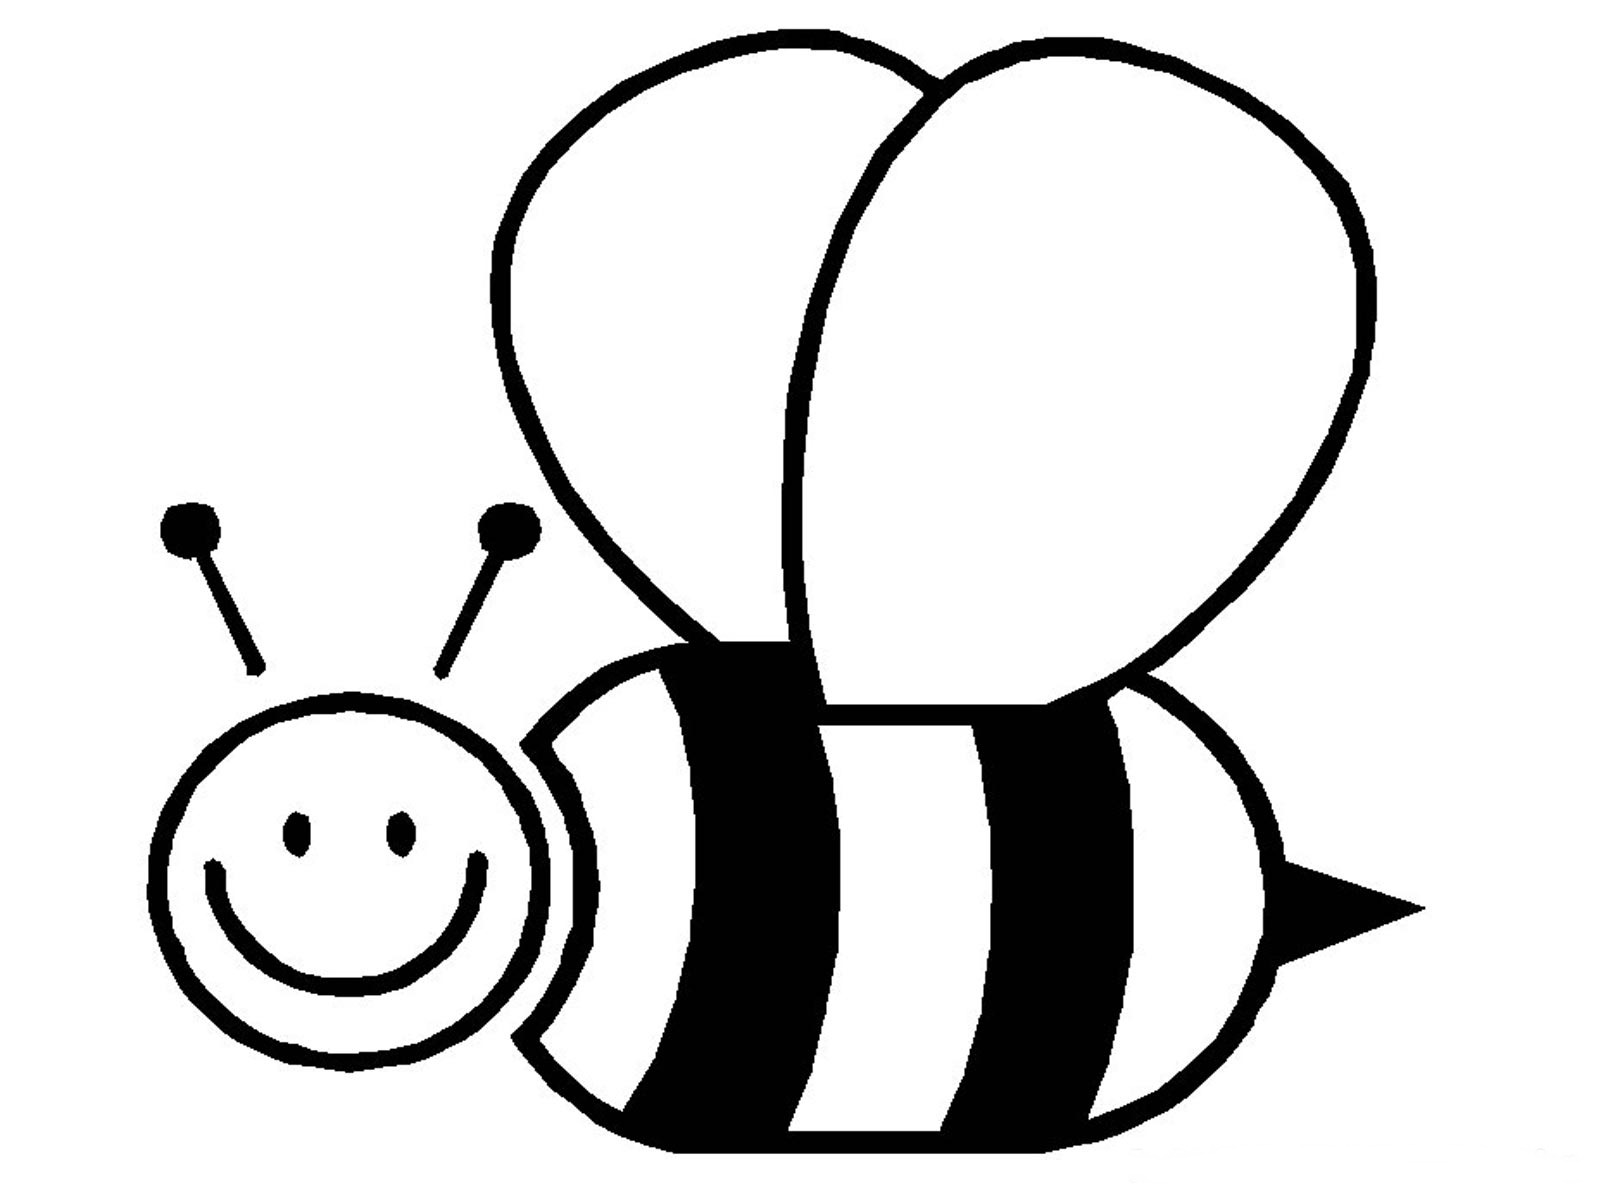 cartoon bumble bee coloring pages bumblebee coloring pages clipart best cartoon bumble pages coloring bee